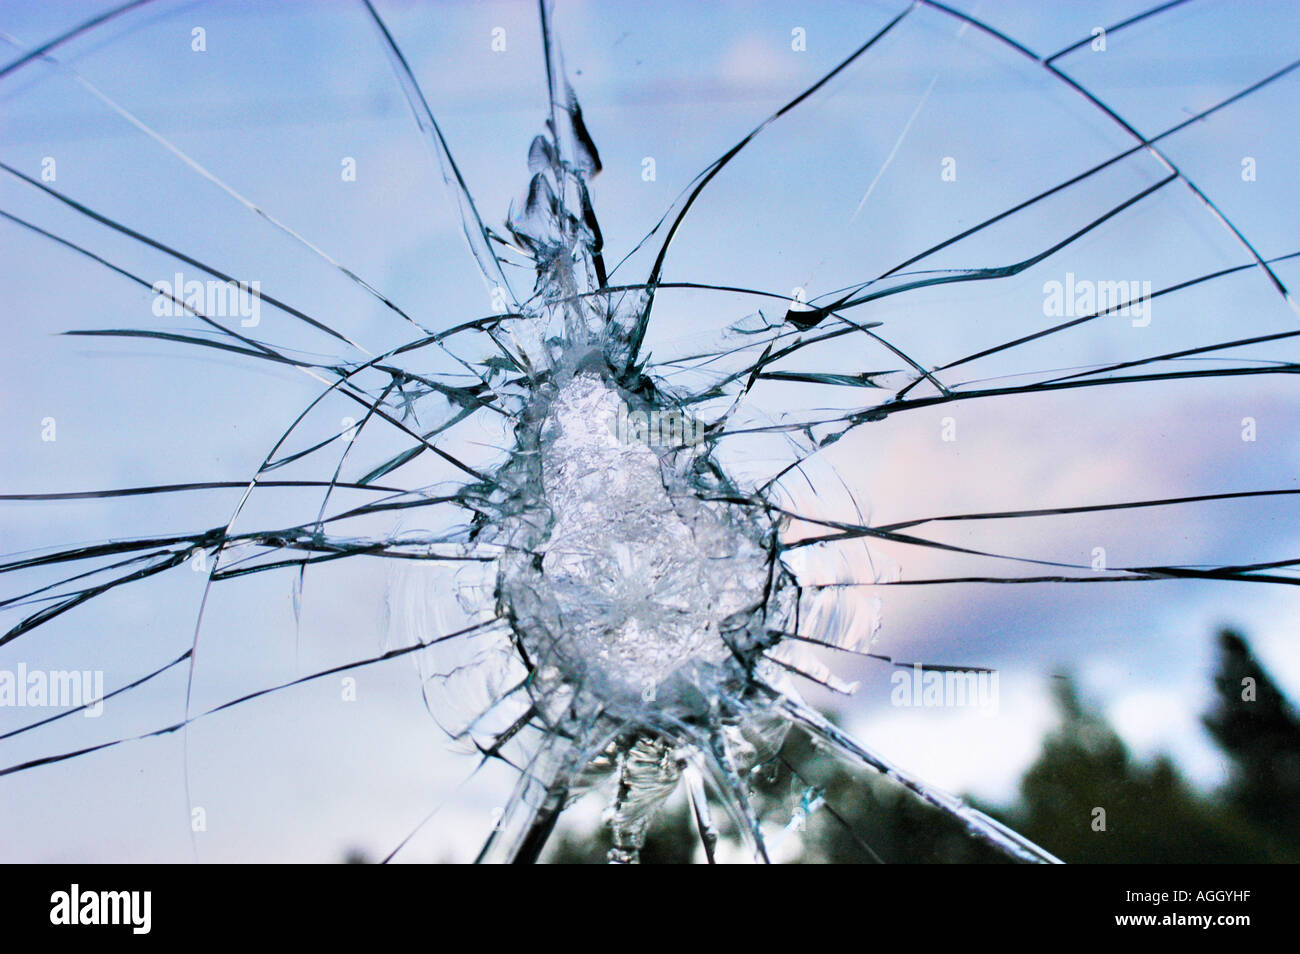 cracked glass shield - Stock Image